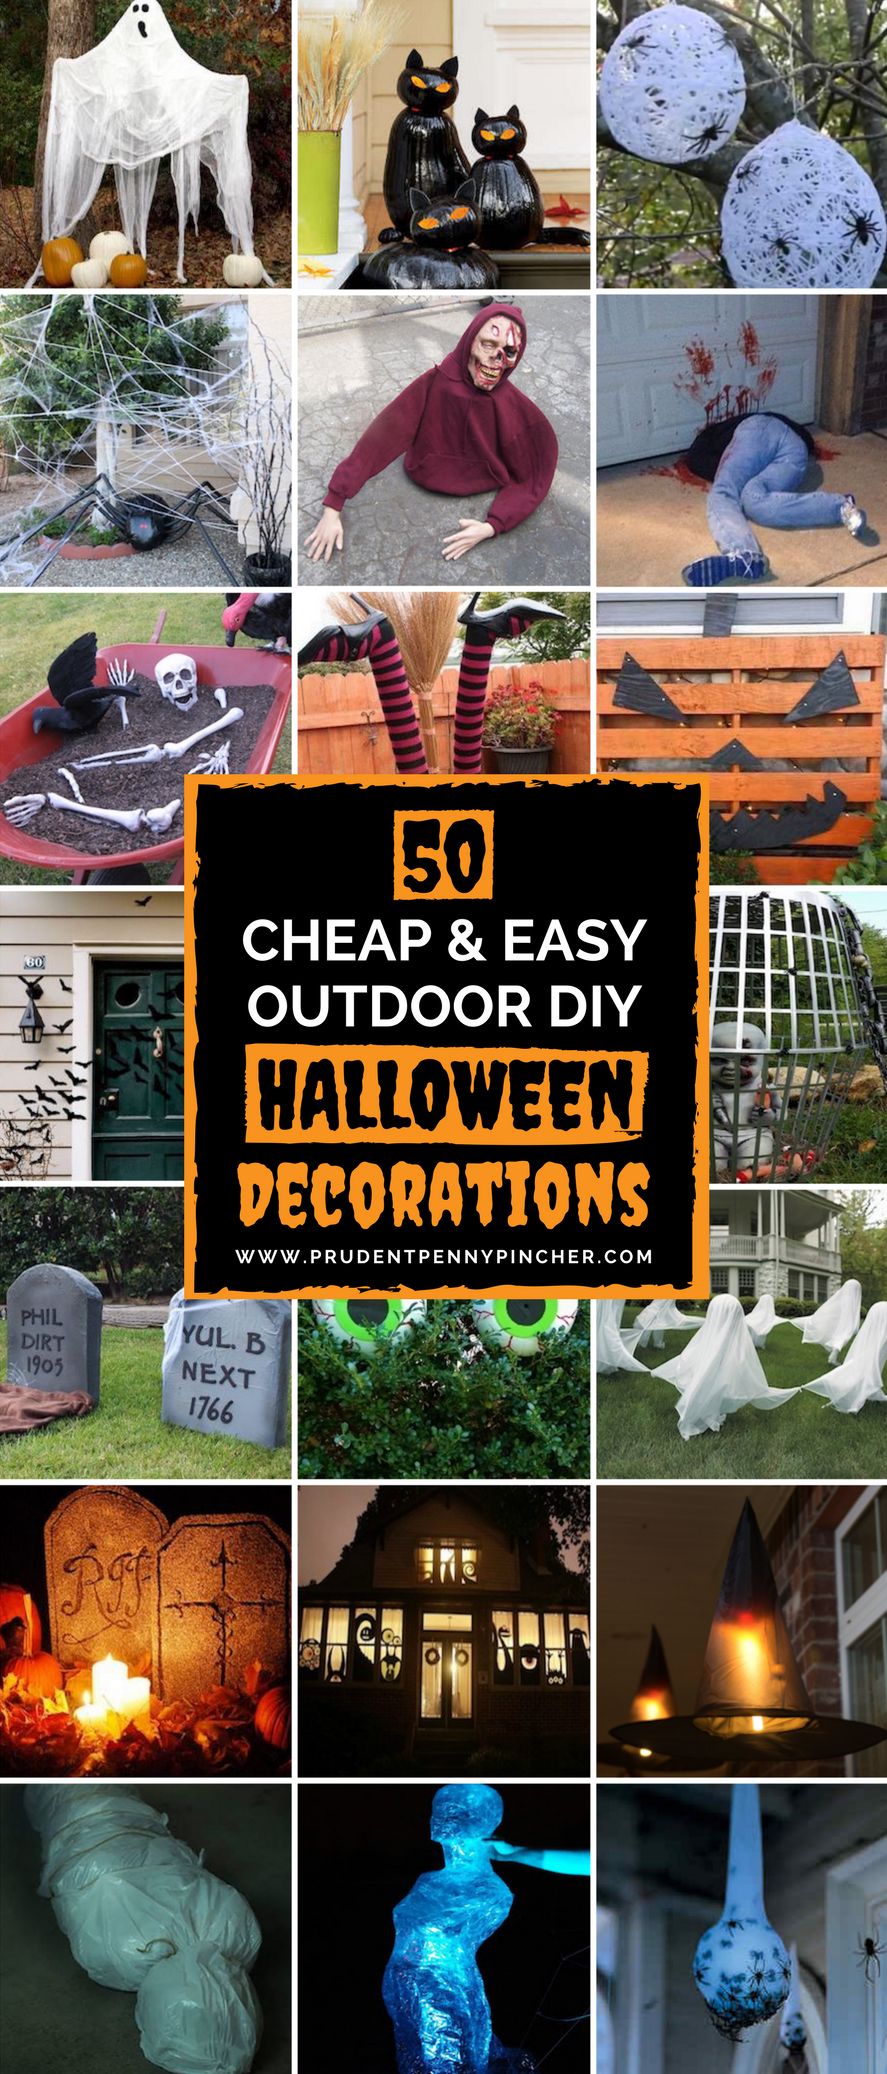 50 cheap and easy outdoor halloween decor diy ideas | halloween